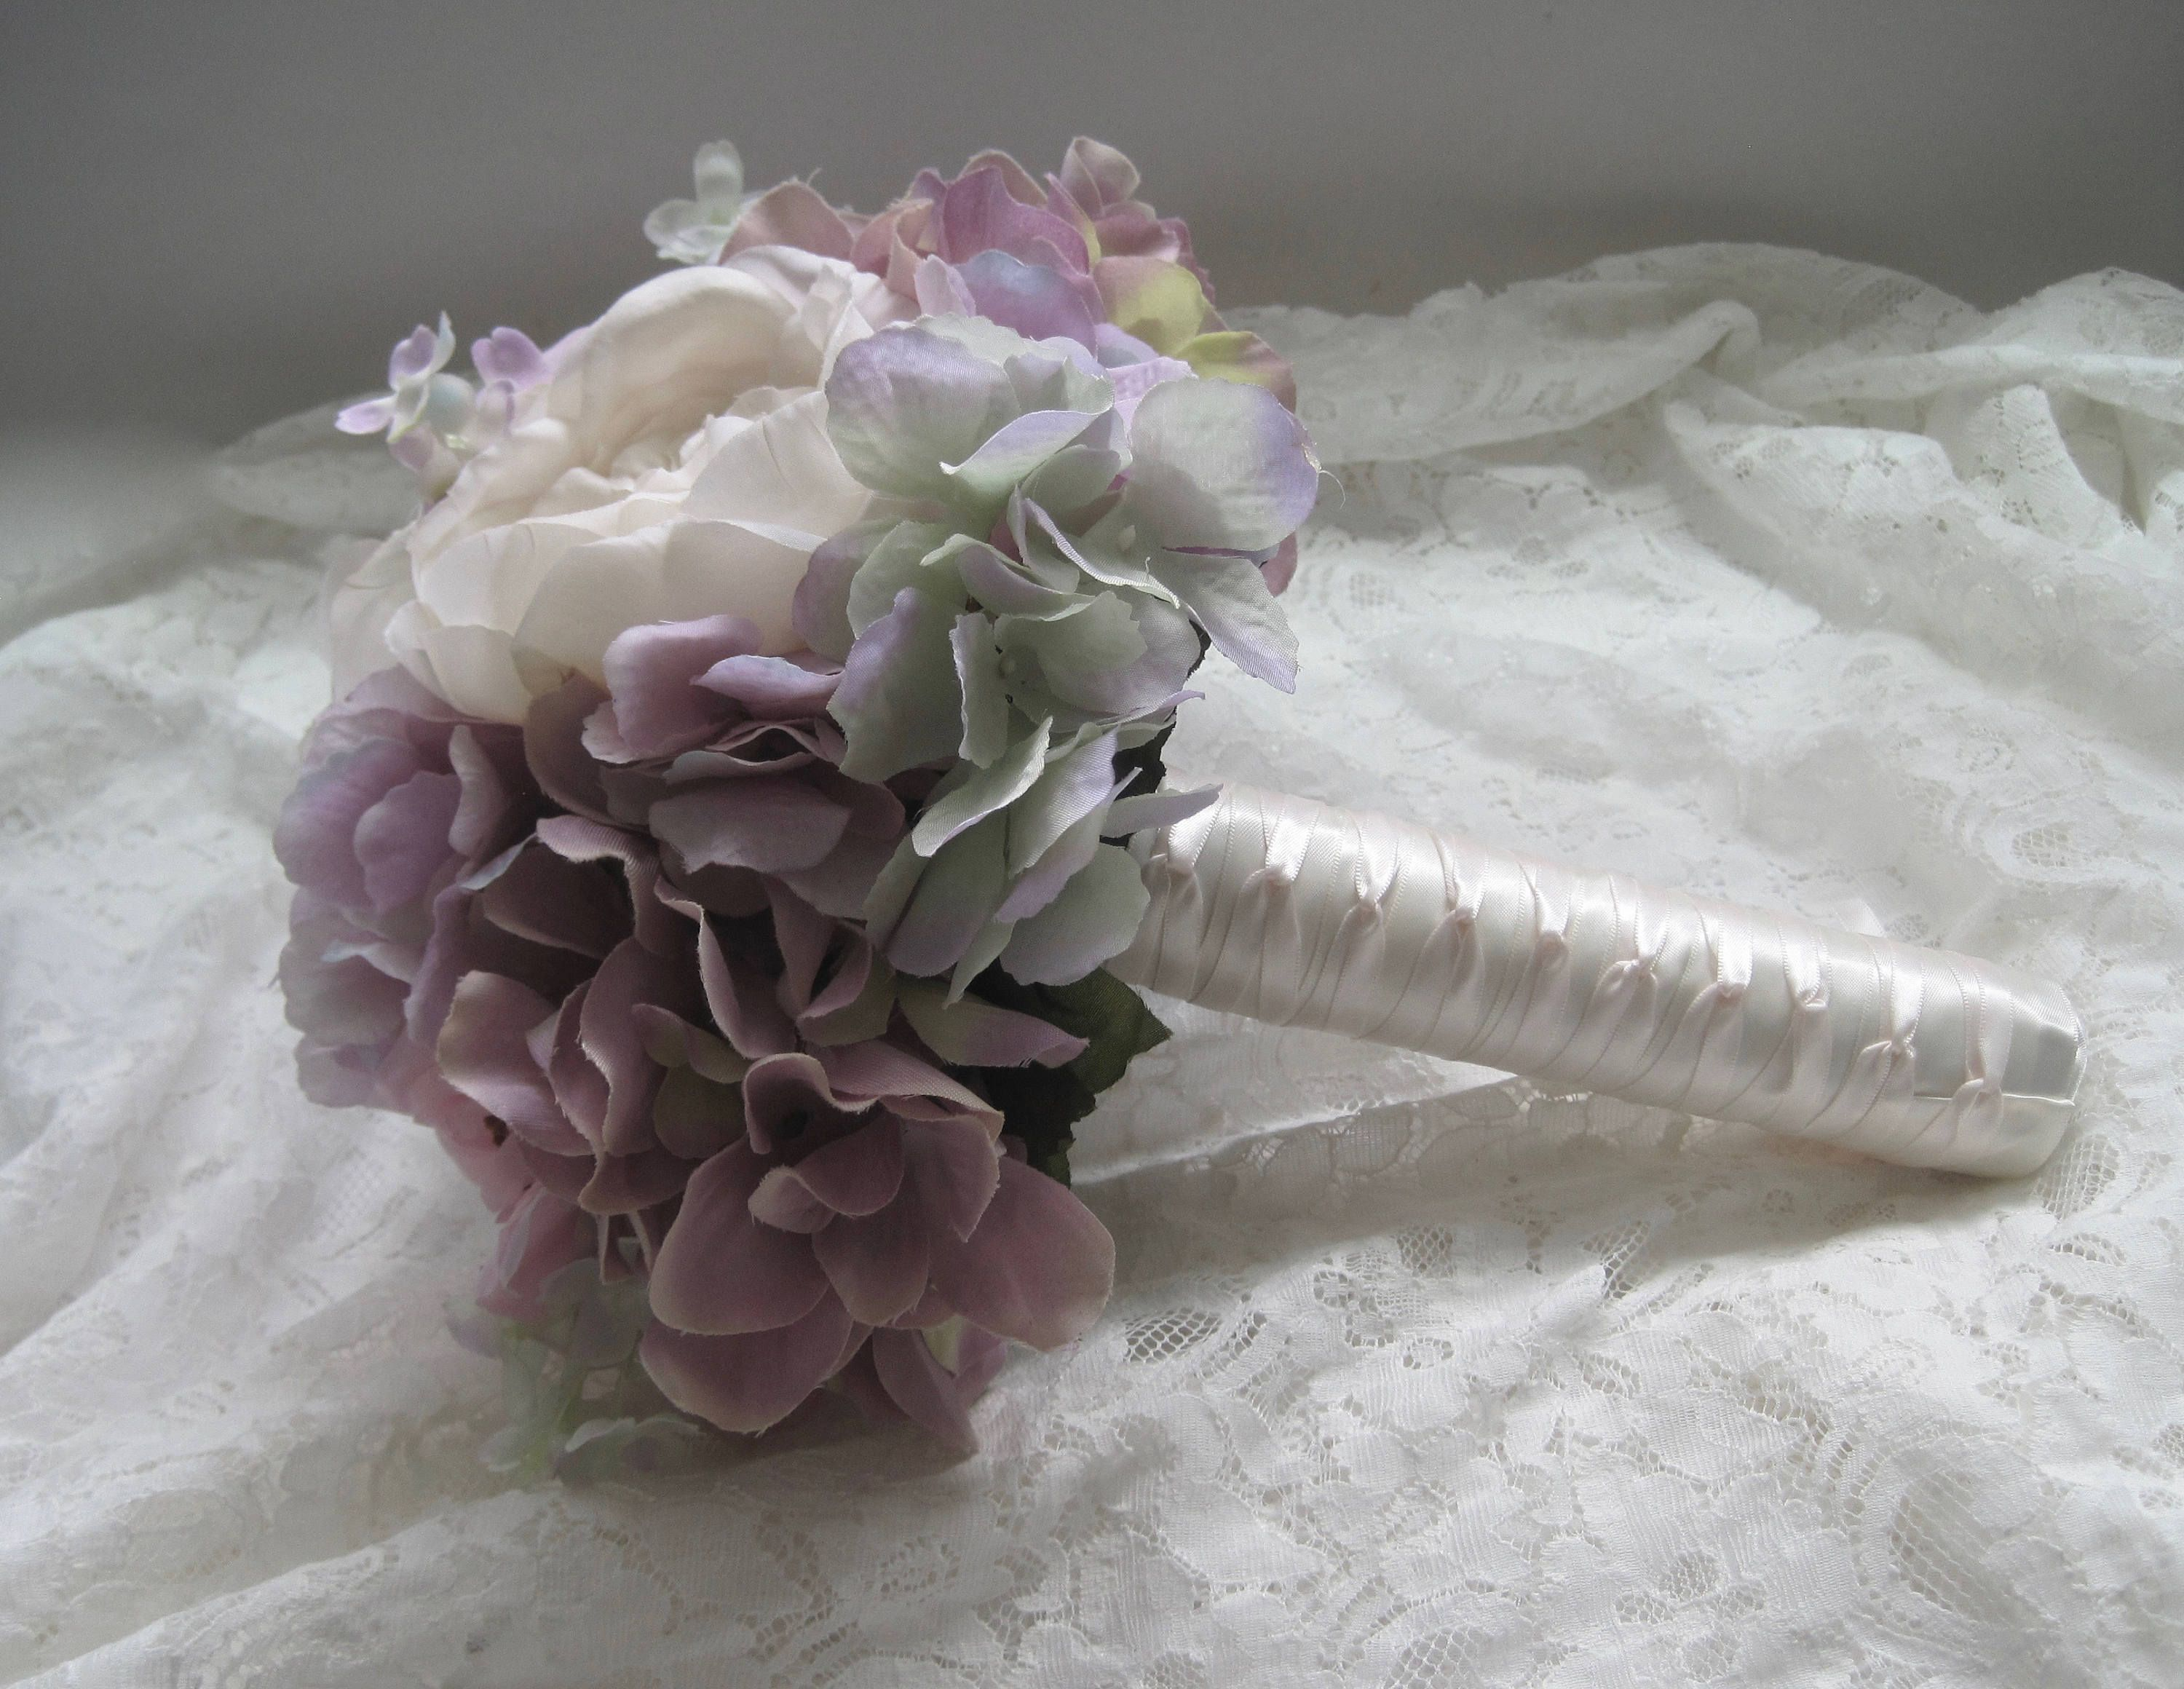 Lavender Bridal Bridesmaid Prom Bouquet With Roses Peonies Hydrangea French Knotted Bridesmaids Flower Girl Wedding Flowers Ready To Ship Bridesmaid Flowers Prom Bouquet Bridesmaid Bouquet